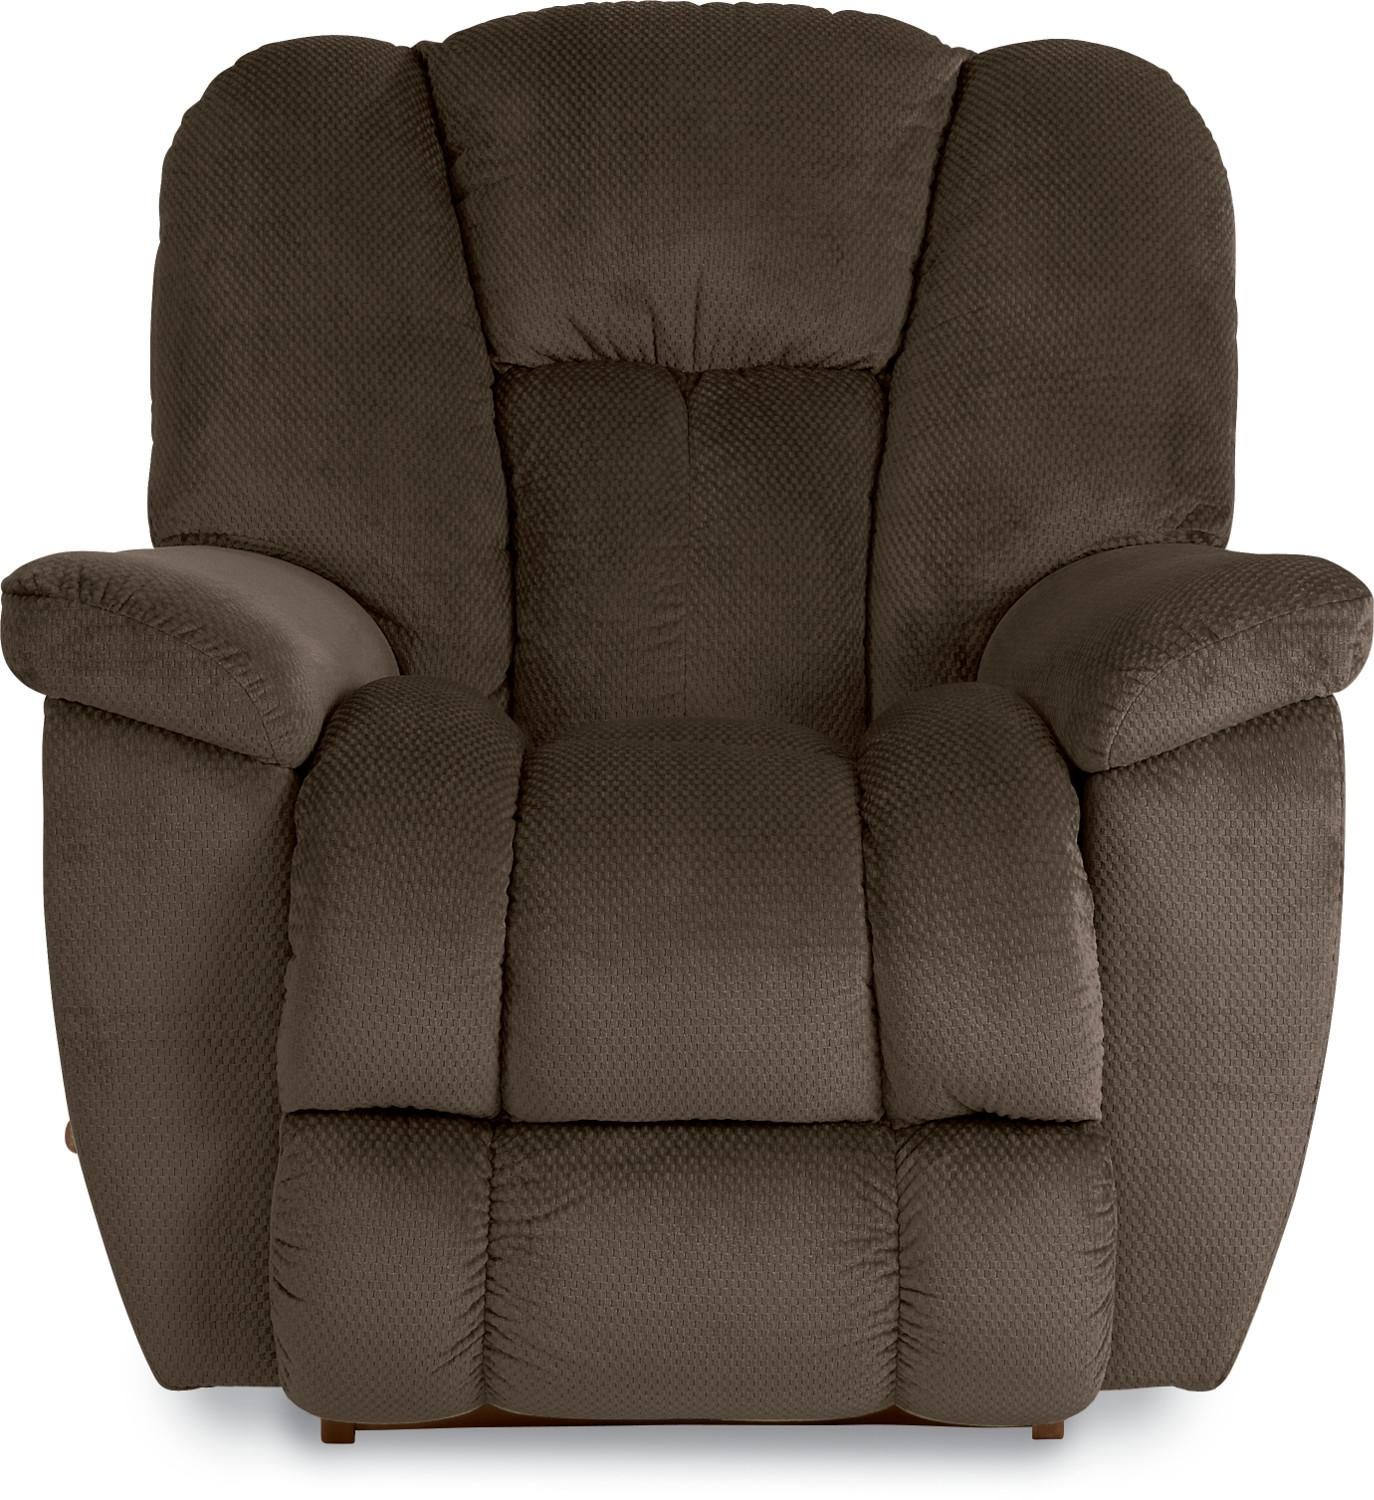 Maverick Wall Recliner by La-Z-Boy at Bullard Furniture